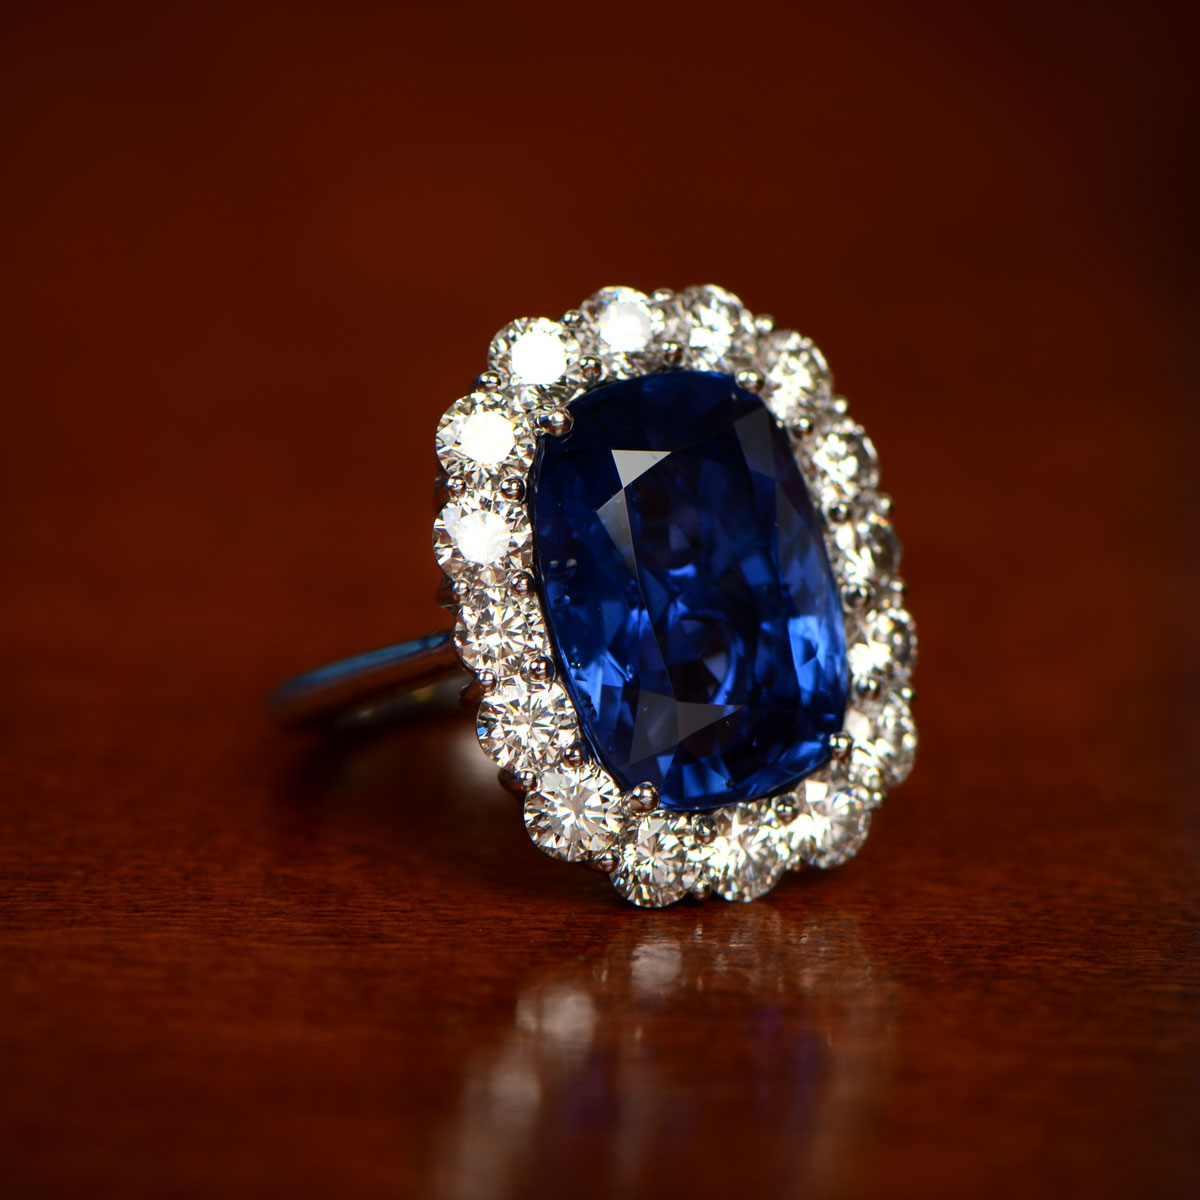 Sapphire Ring with Diamond Halo on Brown Table